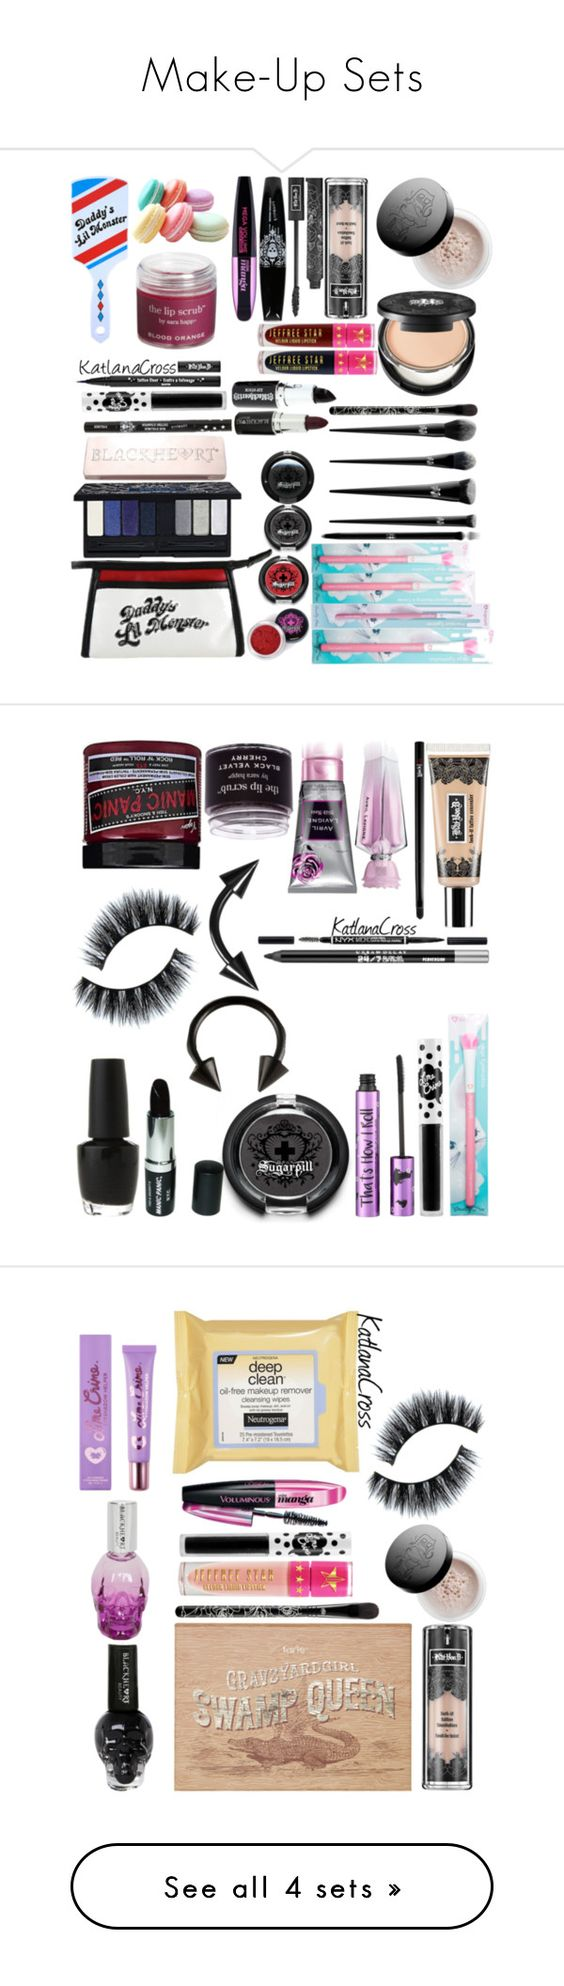 """Make-Up Sets"" by katlanacross ❤ liked on Polyvore featuring beauty, Sugarpill, Kat Von D, Lime Crime, L'Oréal Paris, Jeffree Star, Voom, Sara Happ, Barry M and OPI"